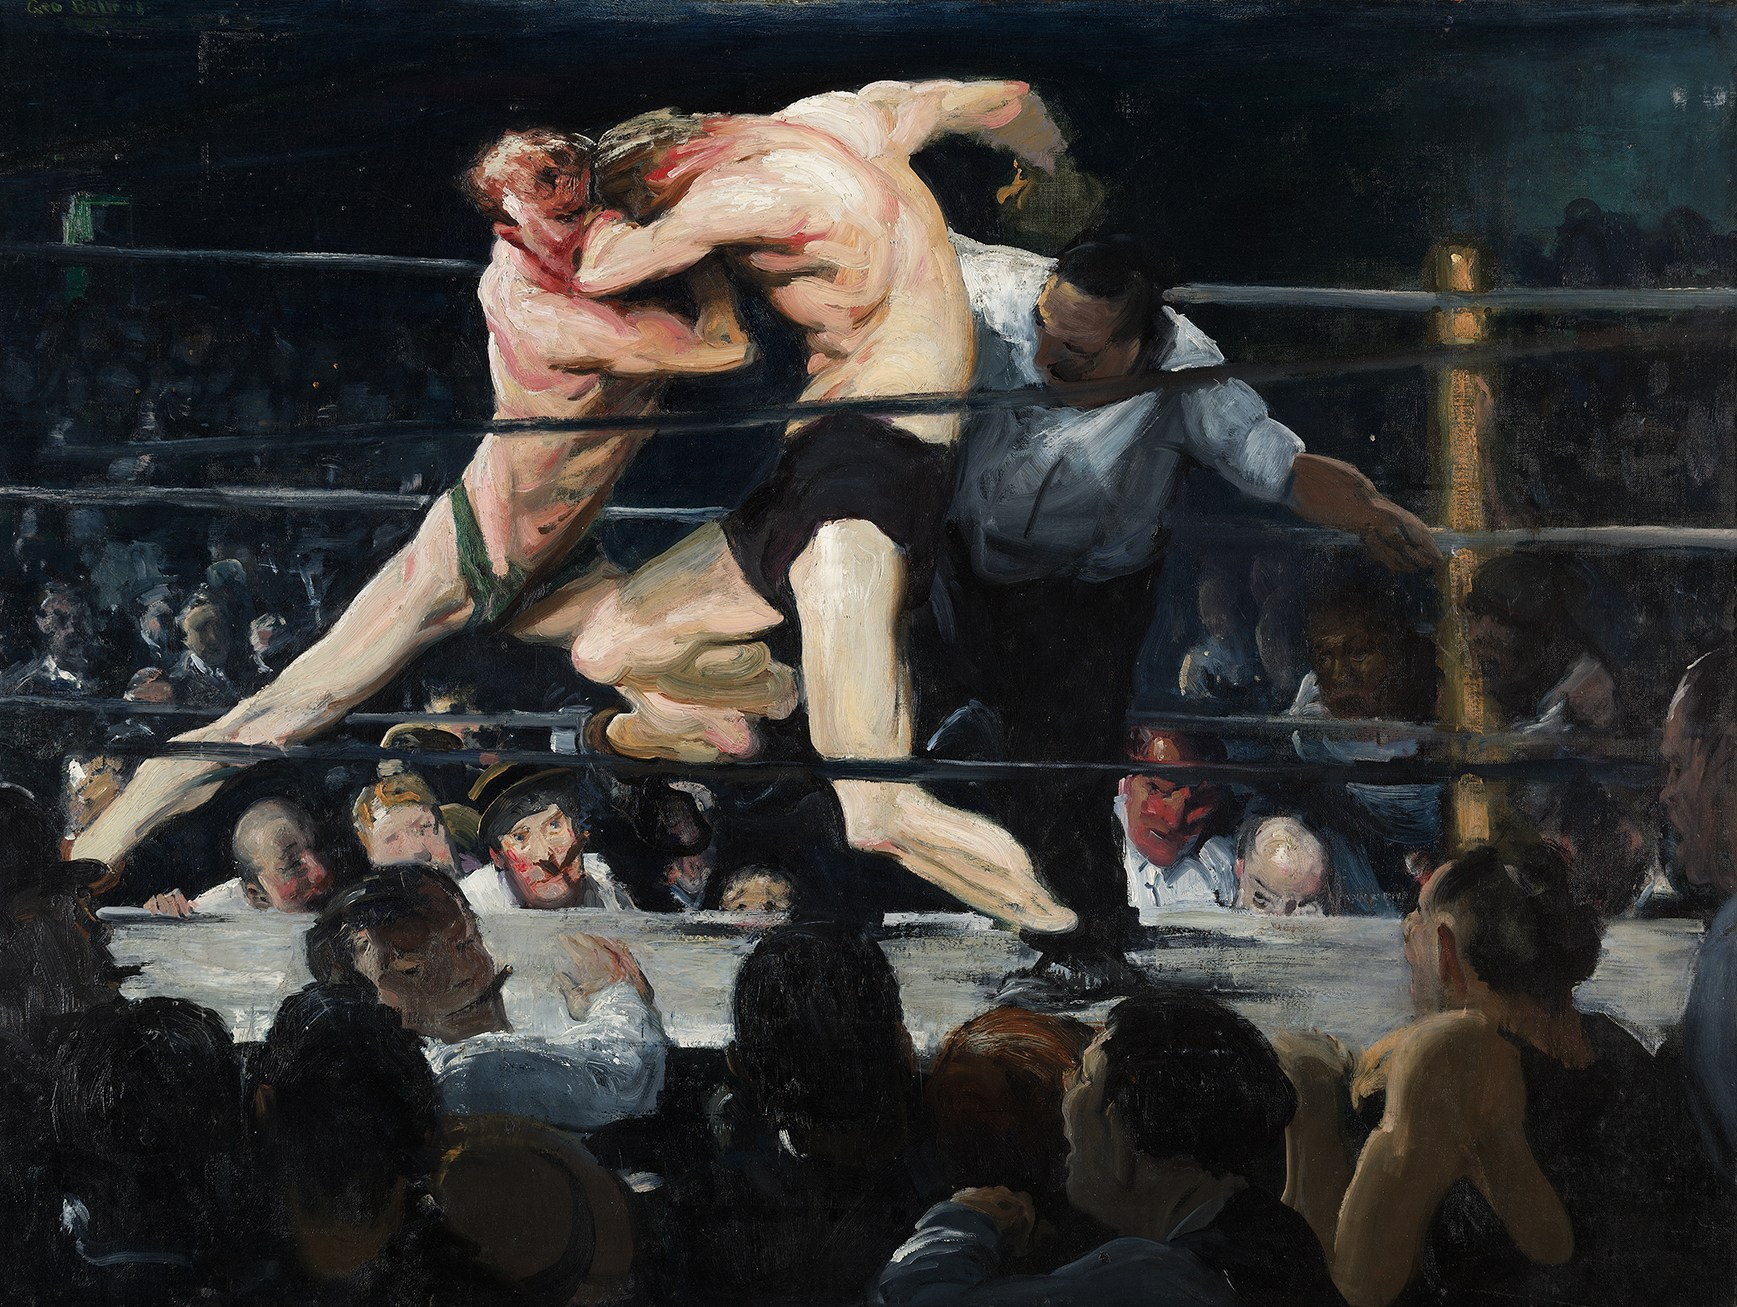 GEORGE BELLOWS, STAG AT SHARKEY'S, 1909, OIL ON CANVAS, 920 x 1226 mm, THE CLEVELAND MUSEUM OF ART